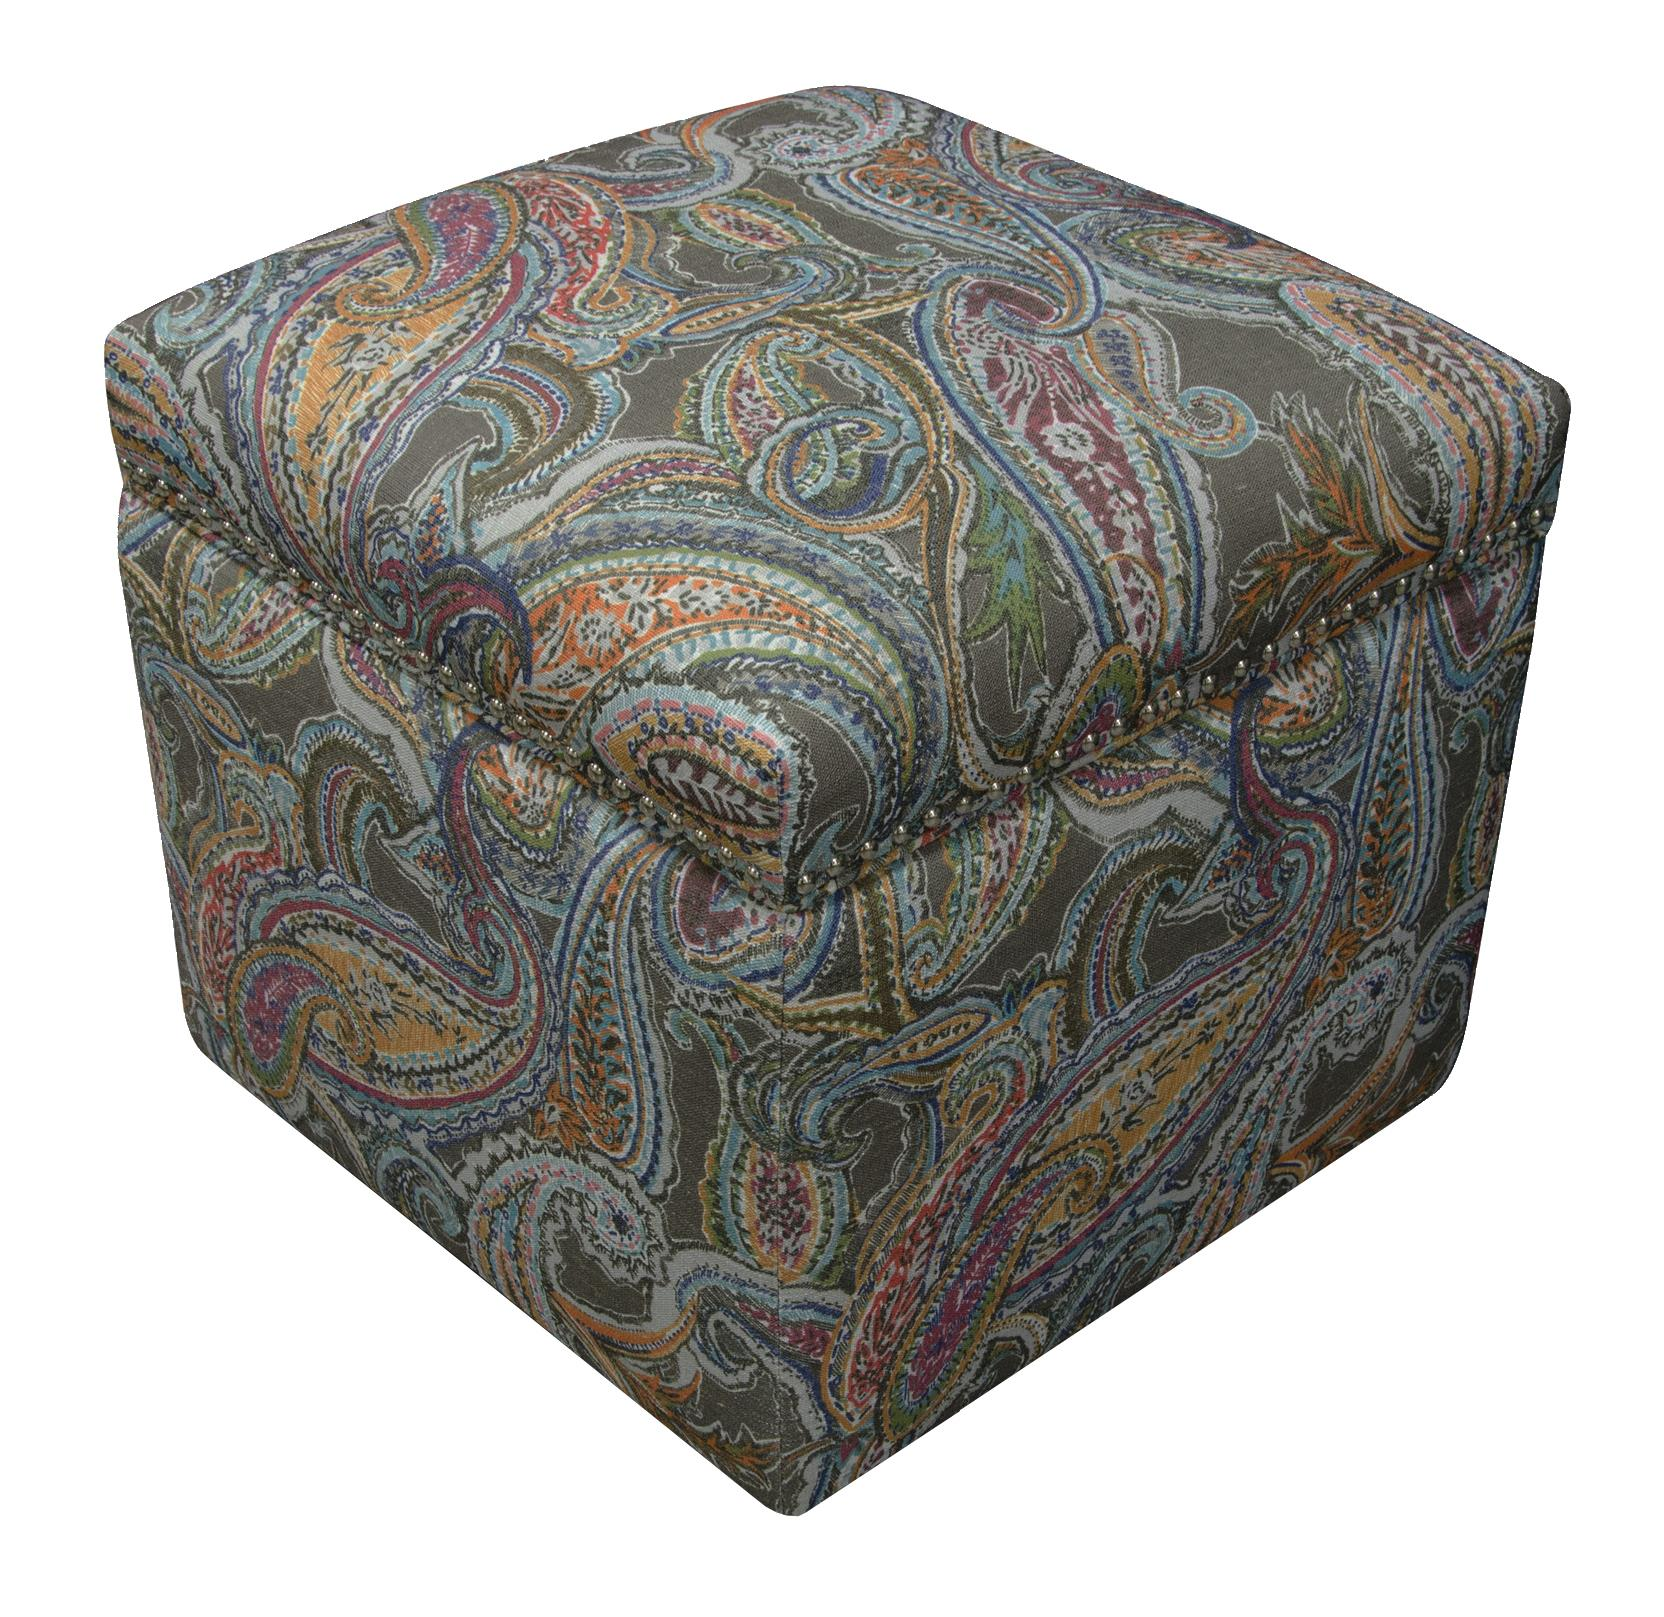 England Parson Storage Ottoman with Nailhead Trim - Item Number: 2F0081N-7373